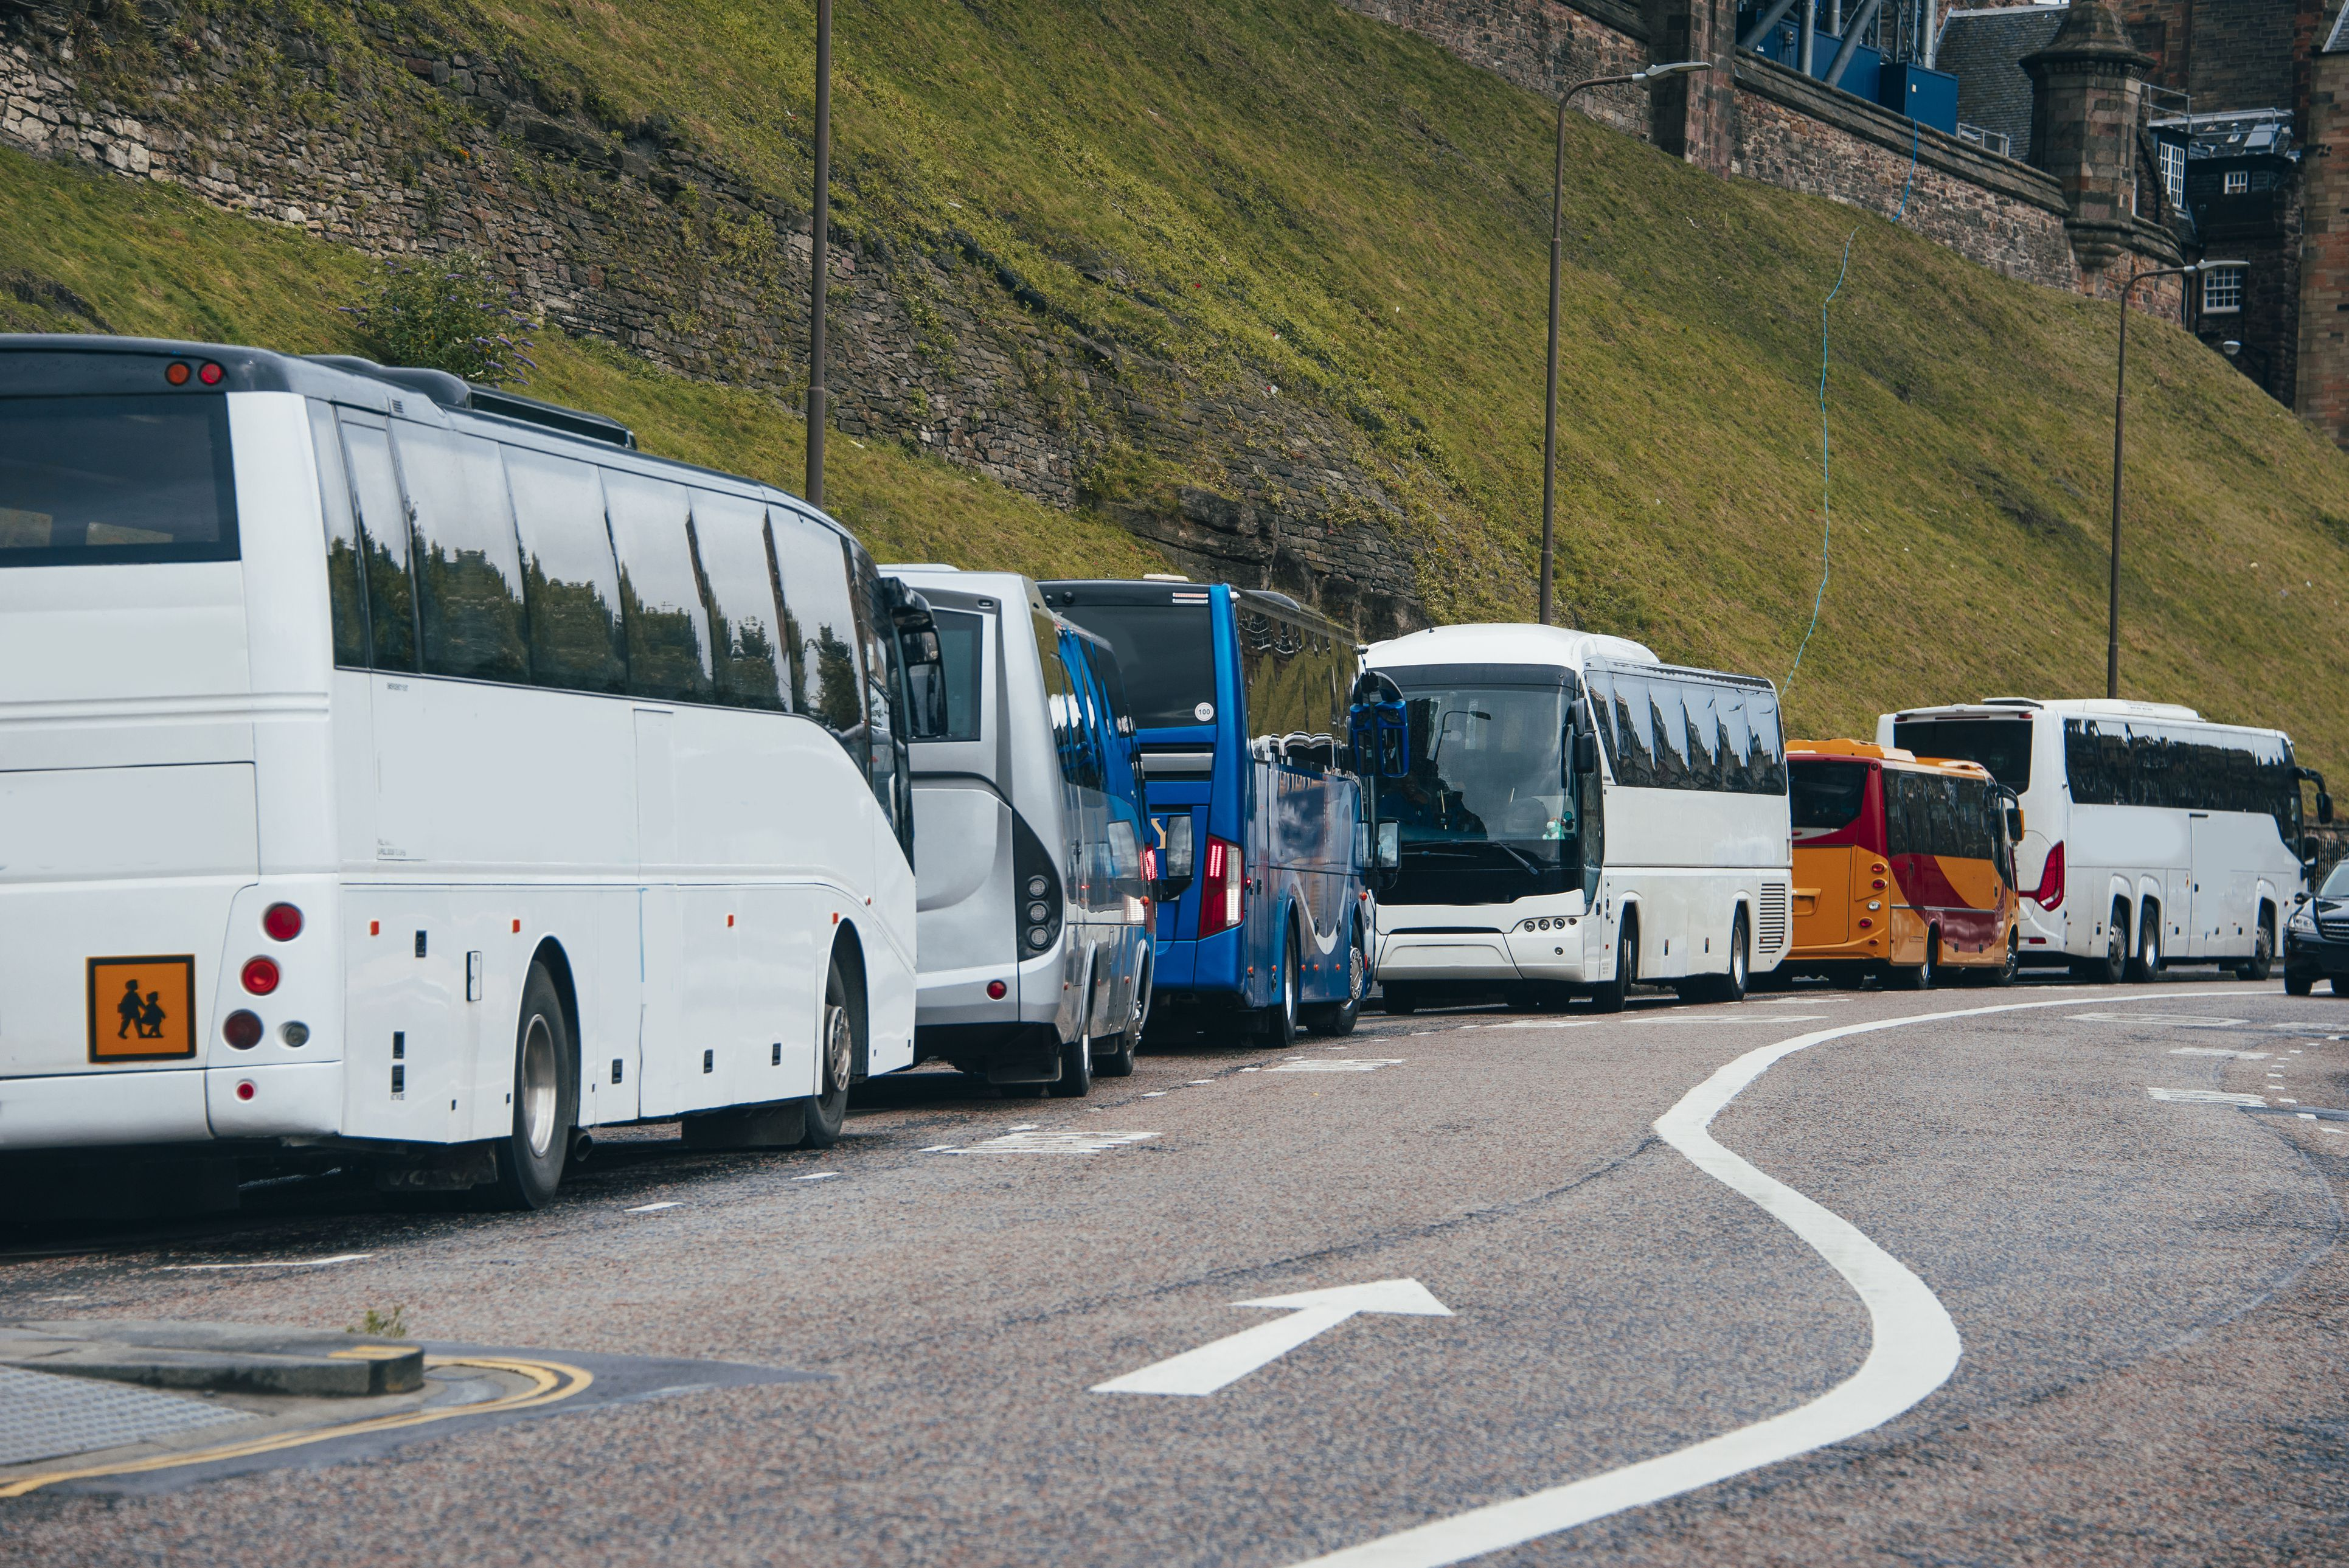 How to Plan a Trip by Bus or Coach in the UK